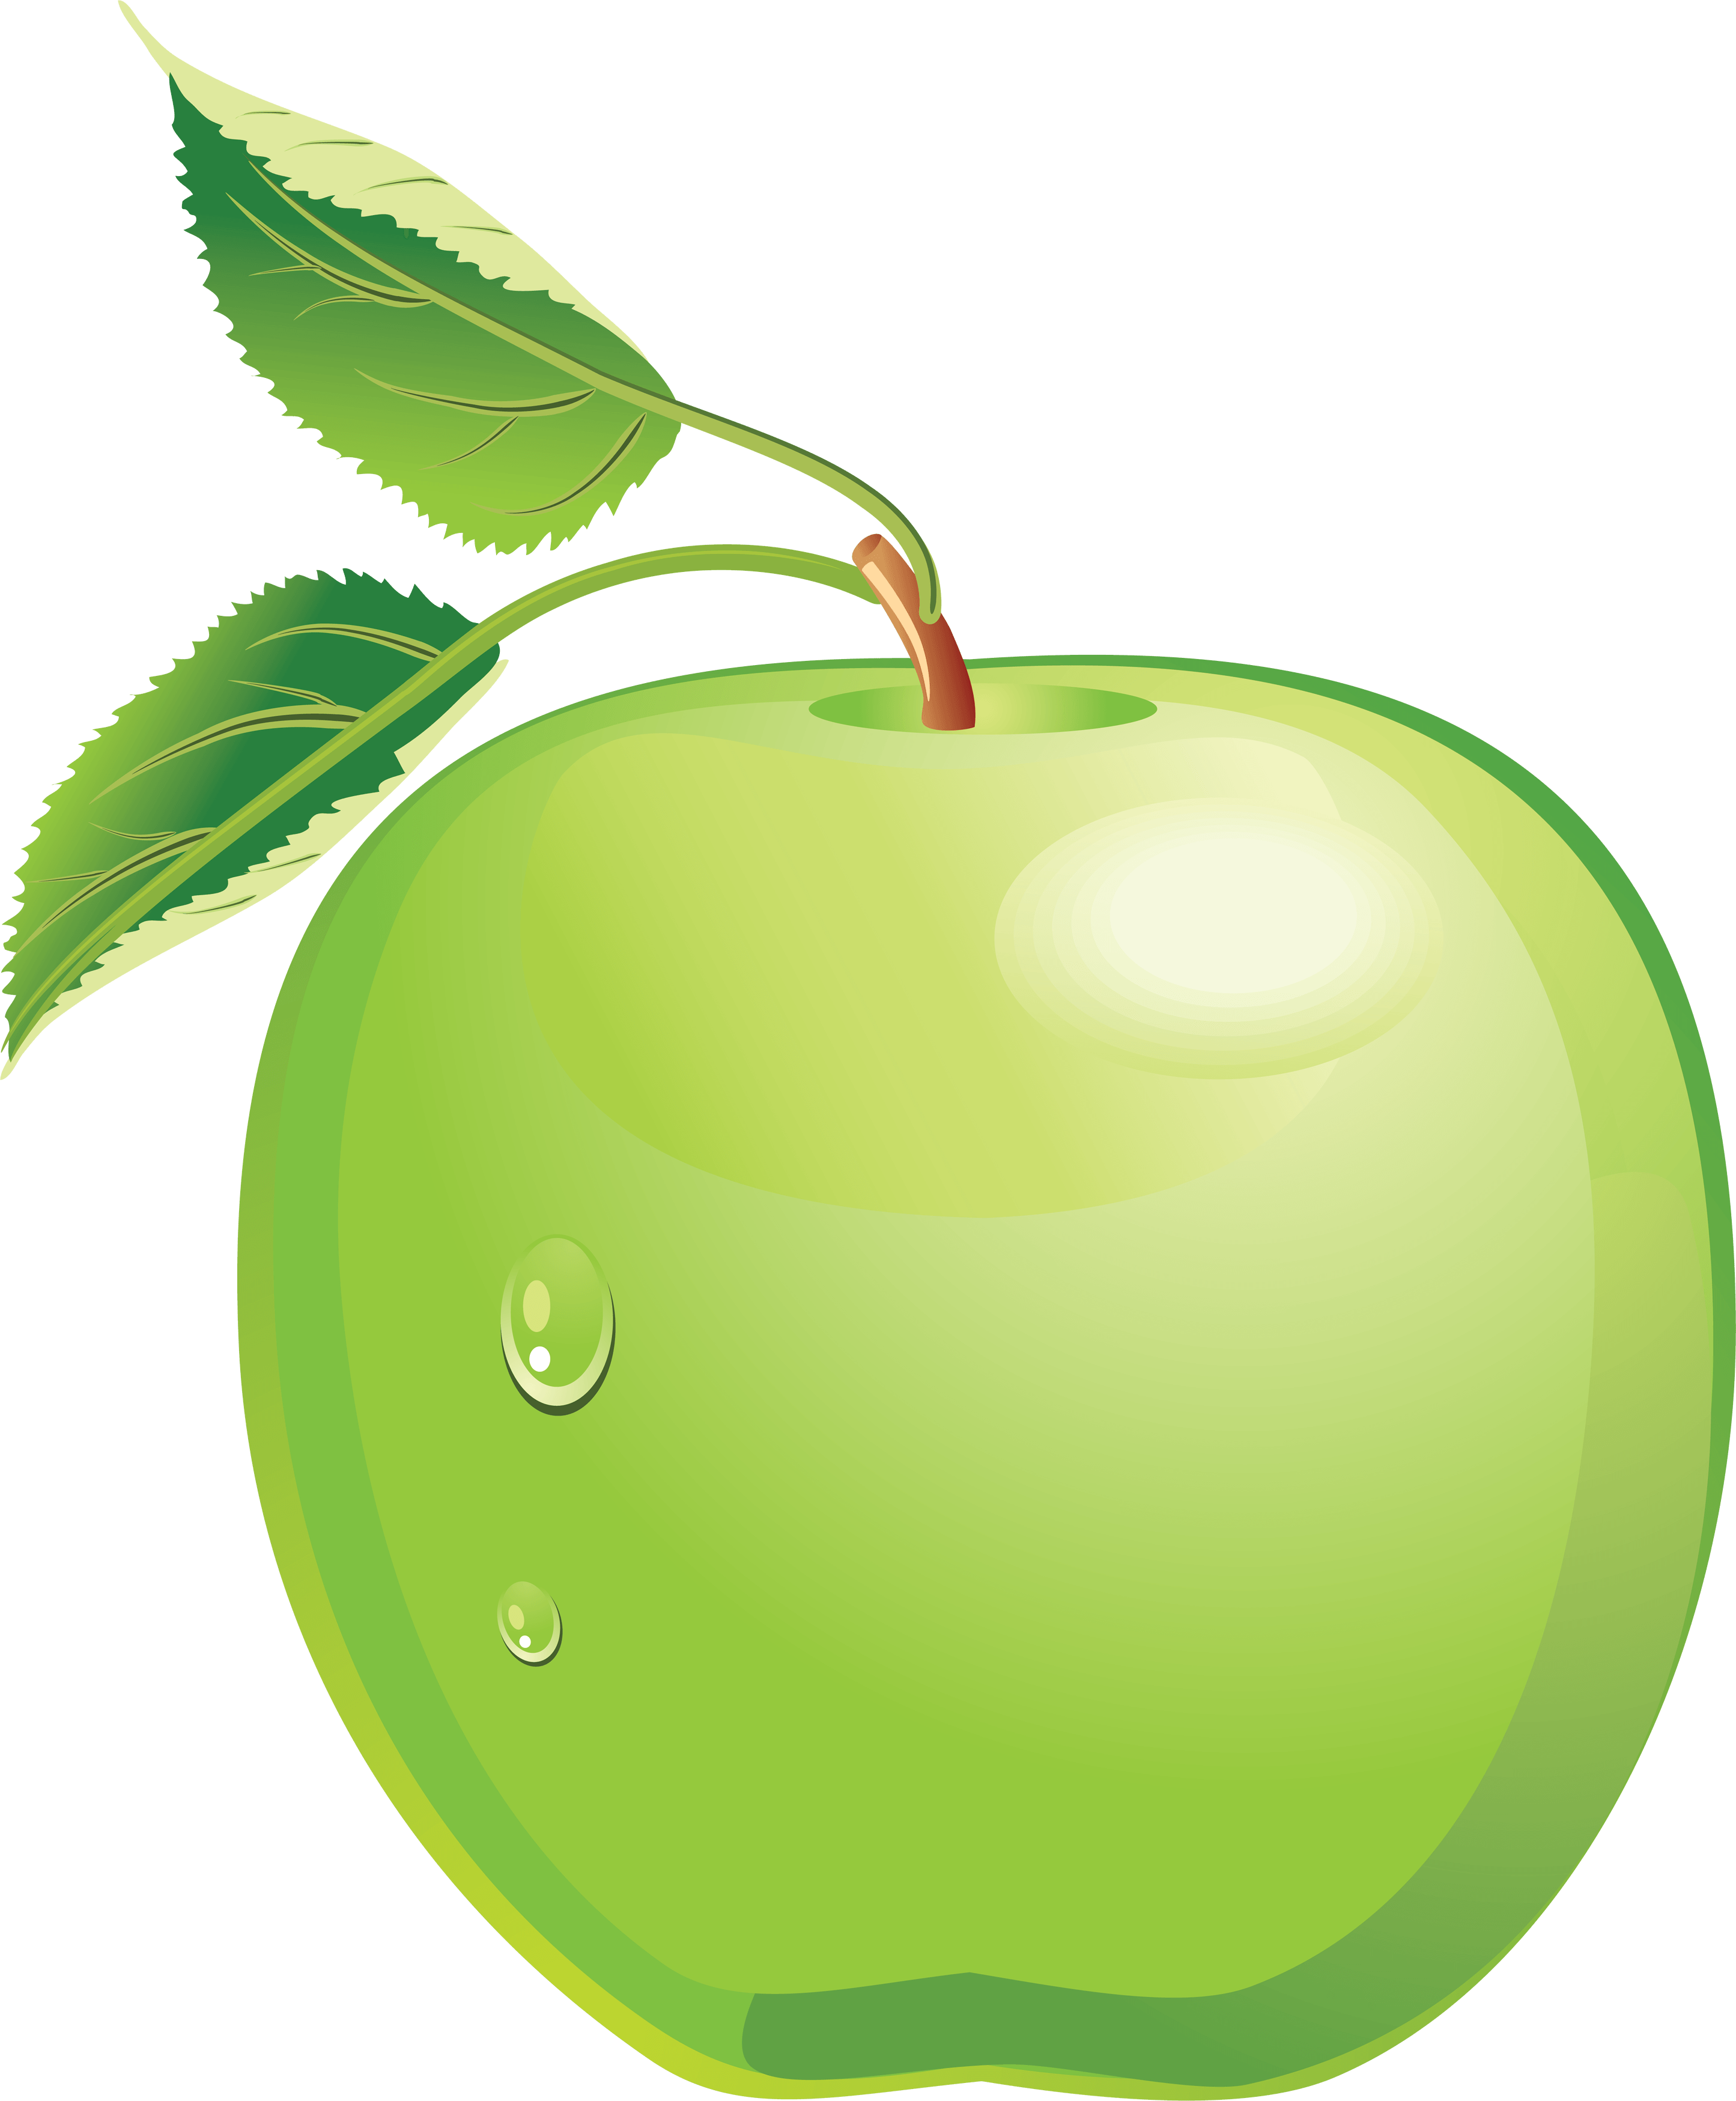 Clipart green apple banner free 10 Green Apple Png Image banner free